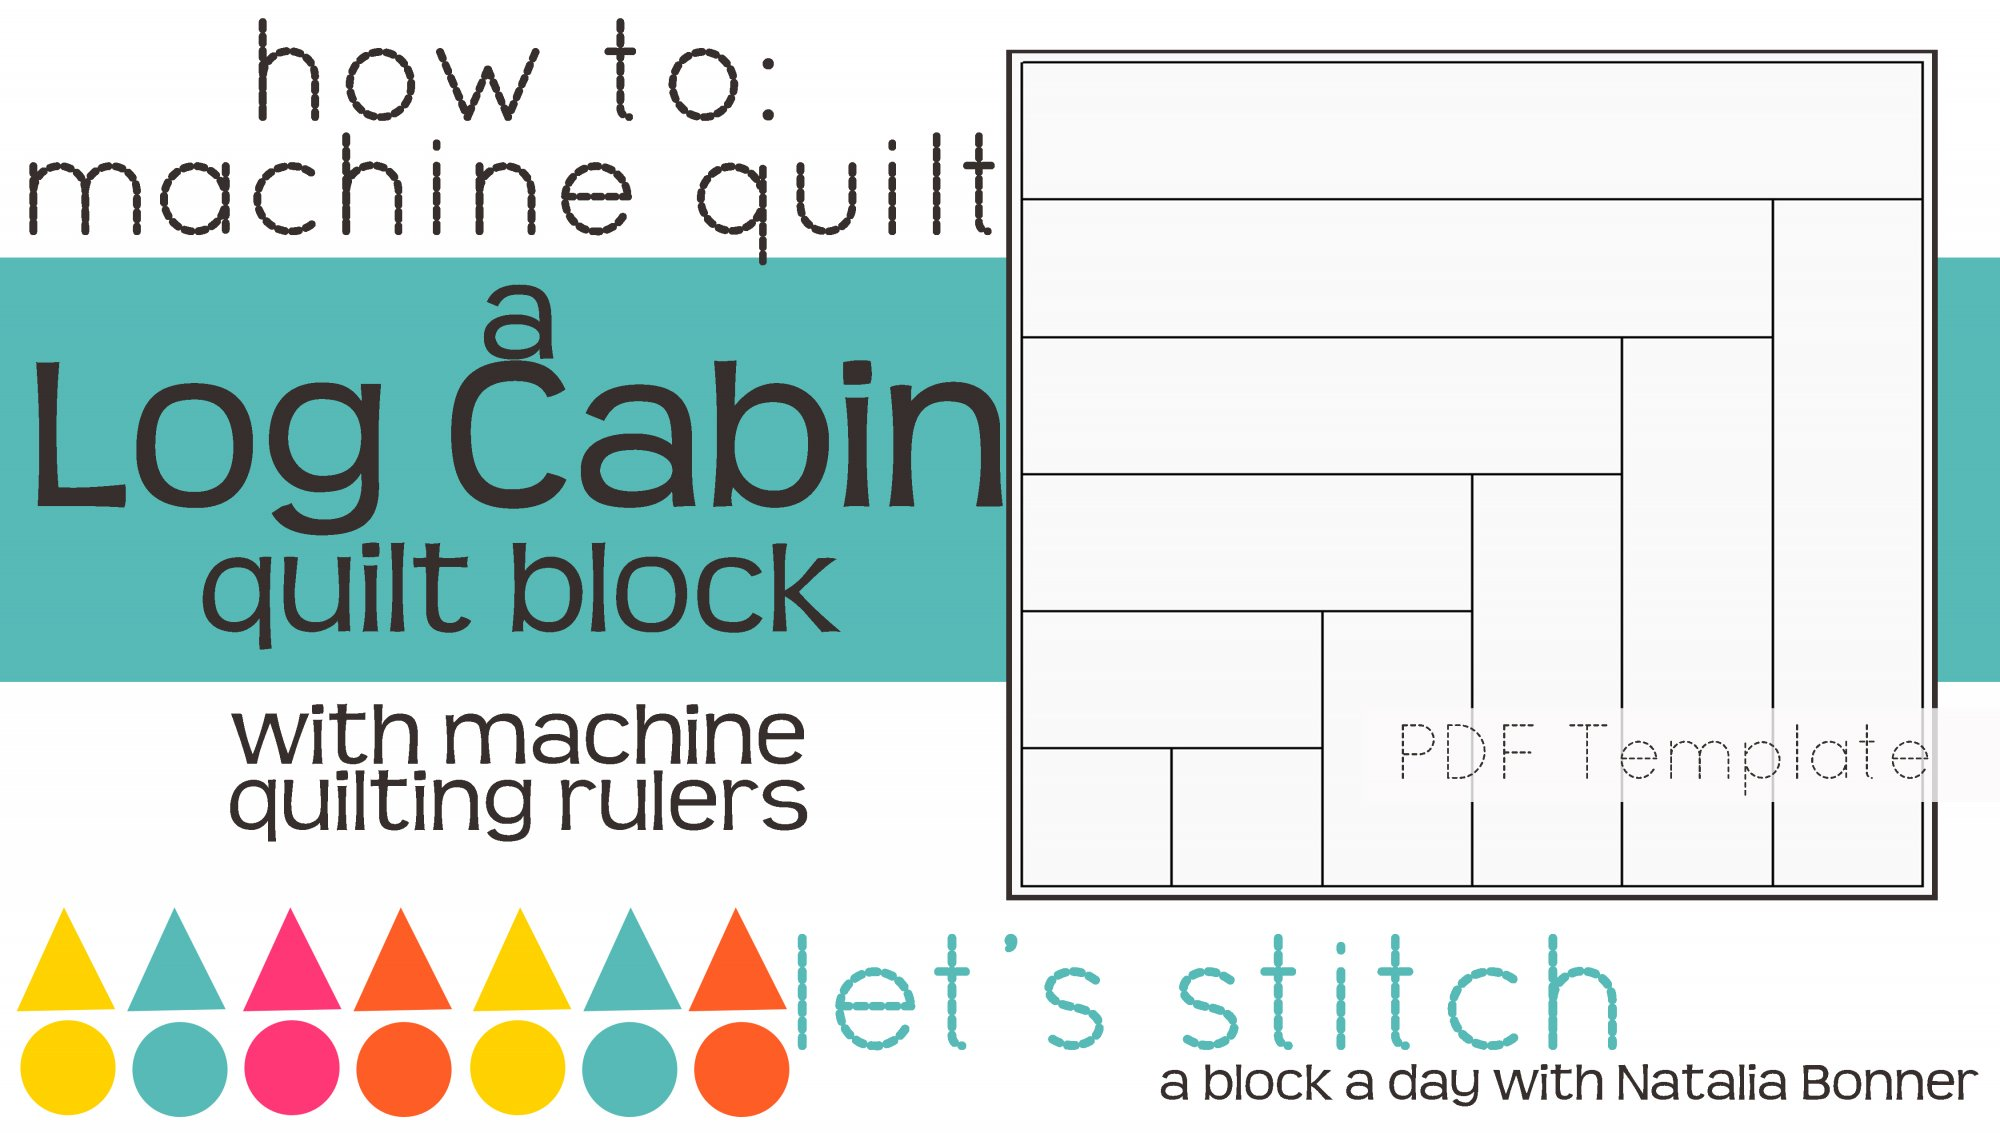 Let's Stitch - A Block a Day With Natalia Bonner - PDF - Log Cabin